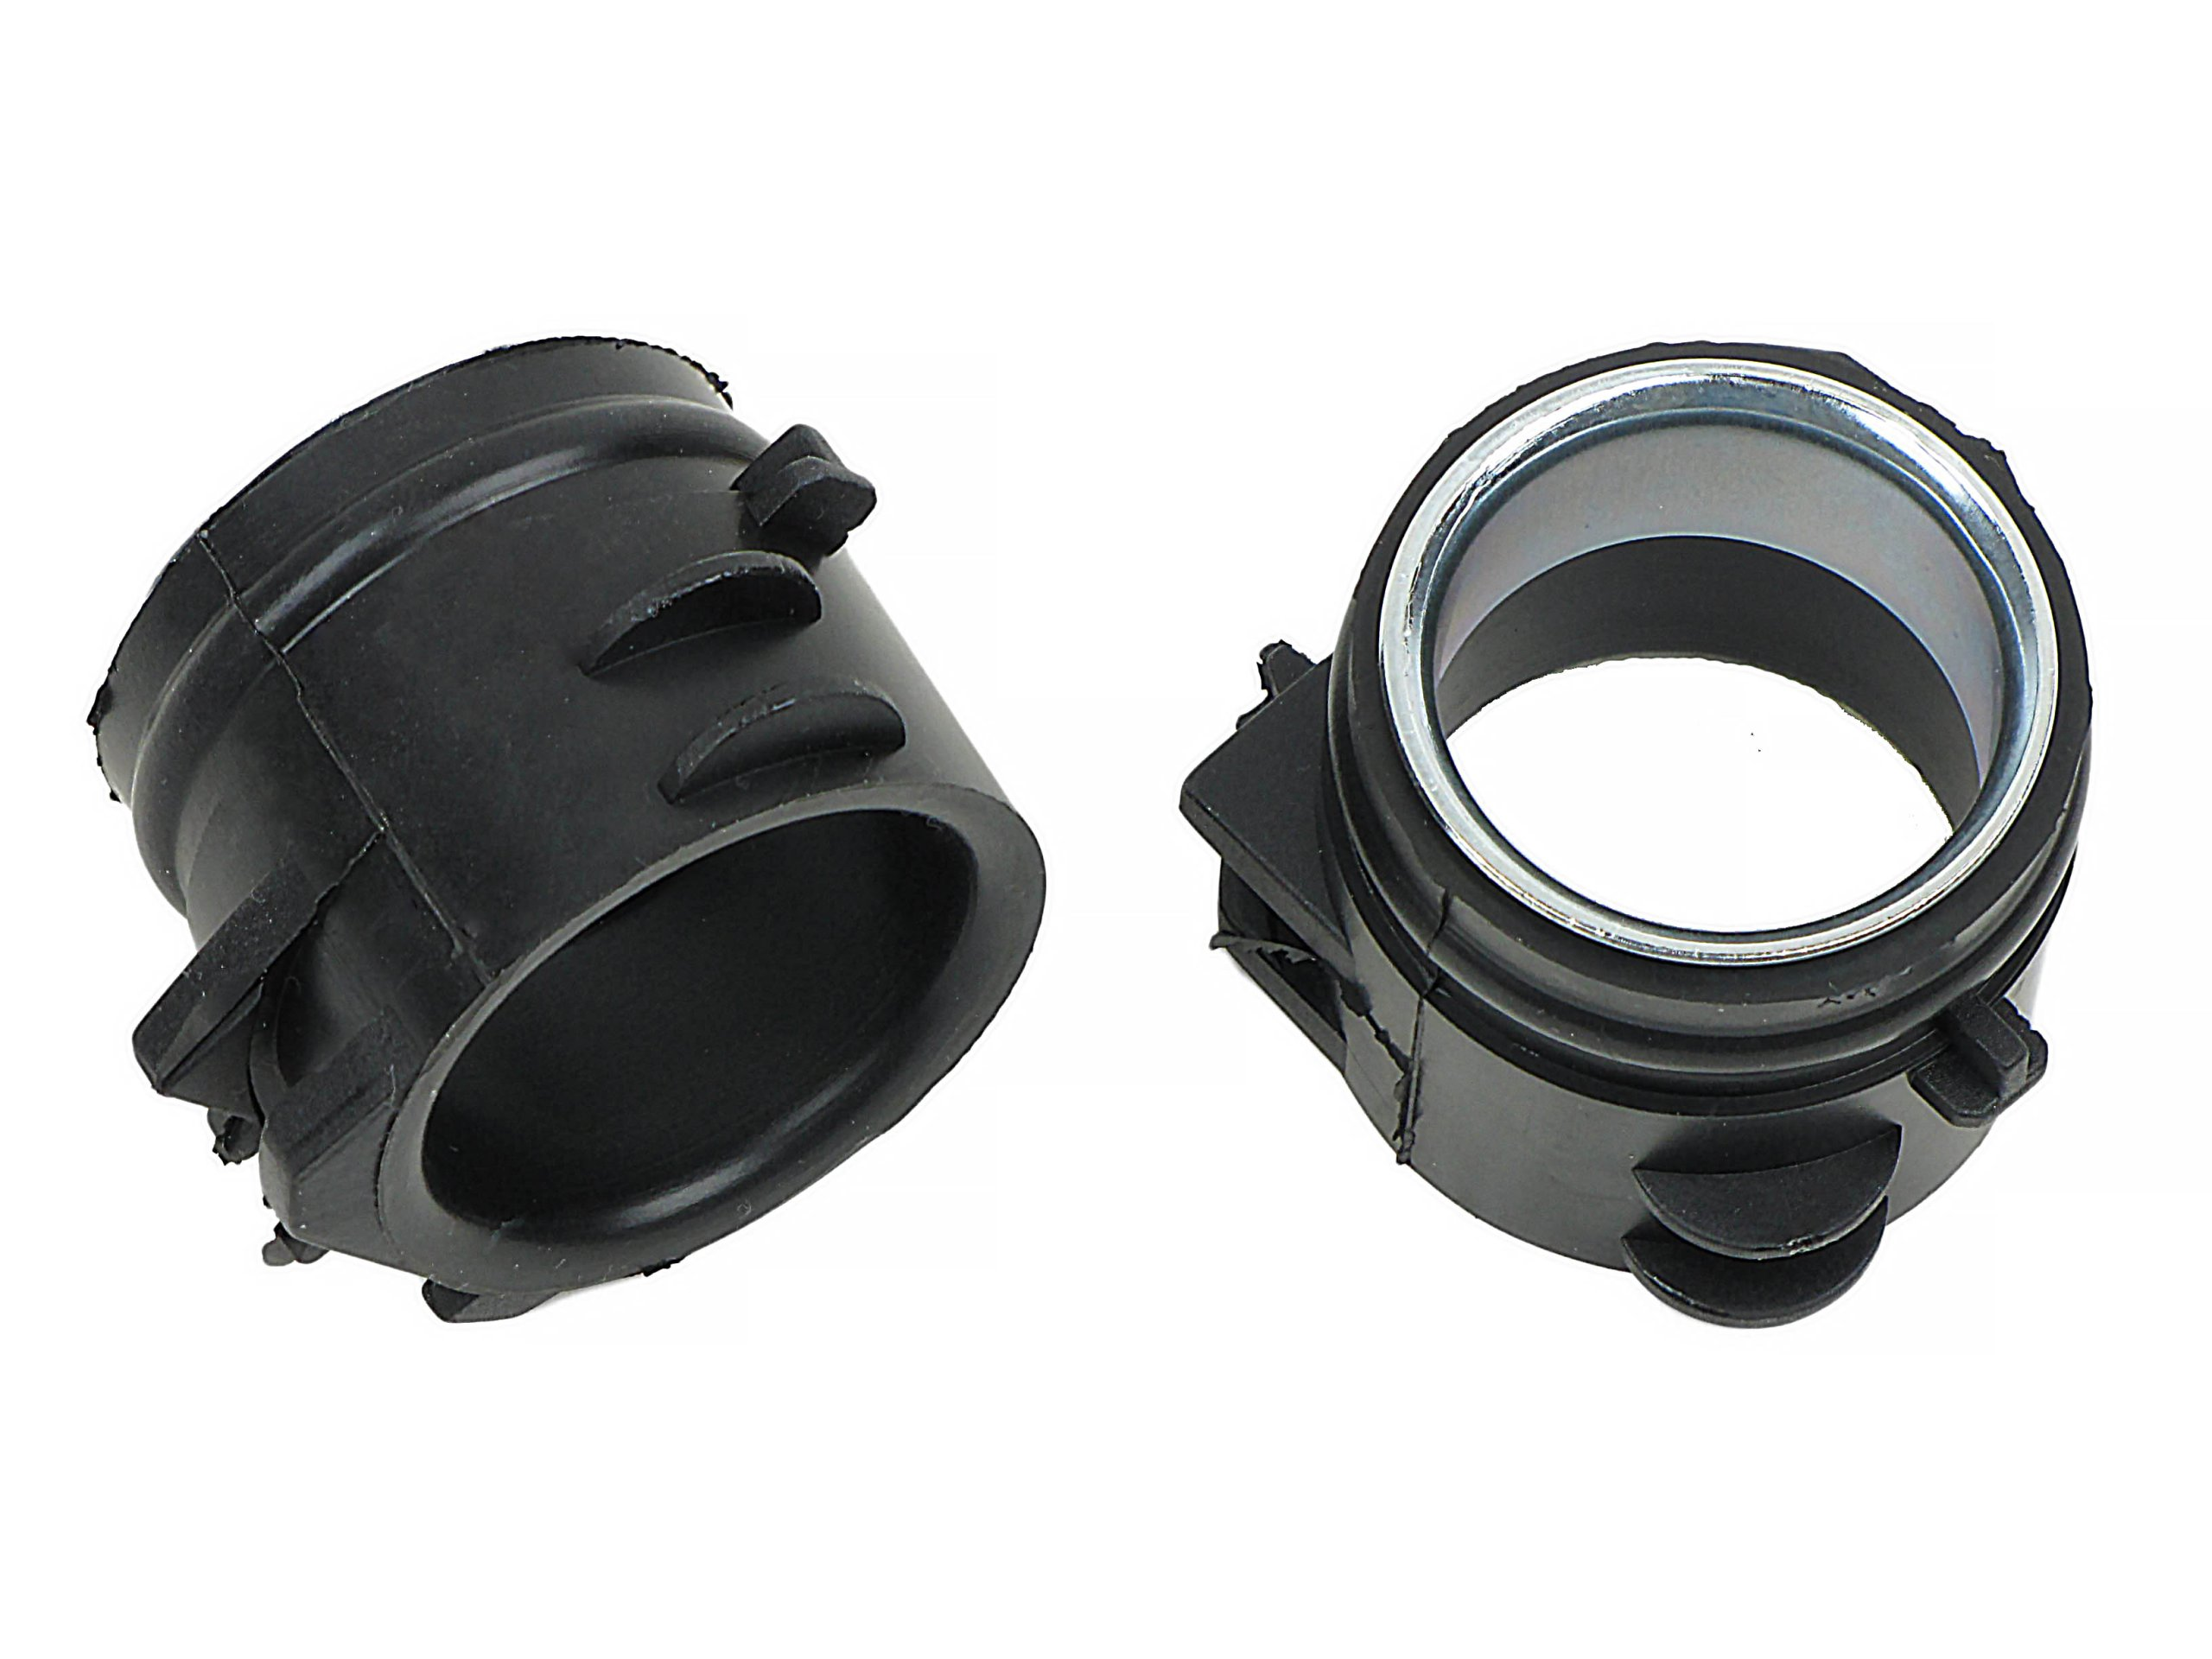 Volvo s40 v50 c30 1 6d d4164t air filter flow intake hose for Filtro aria abitacolo valanghe 2004 chevy